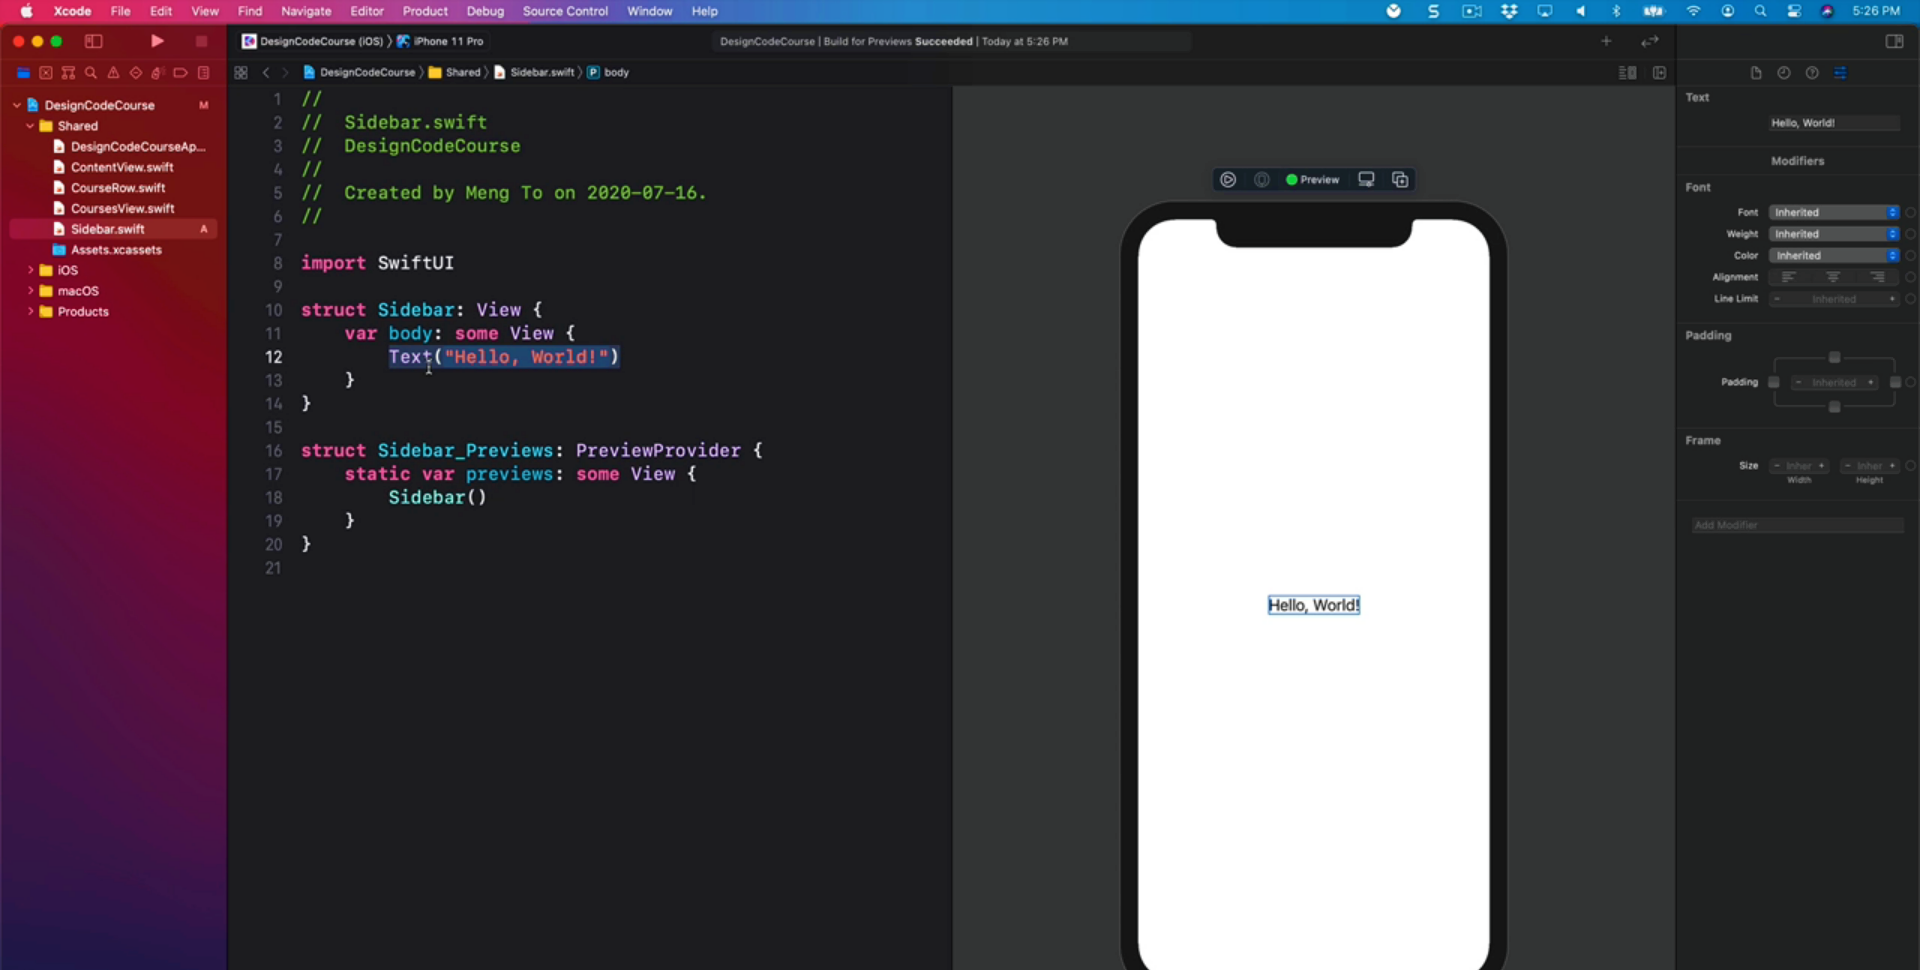 swiftui-section4-1